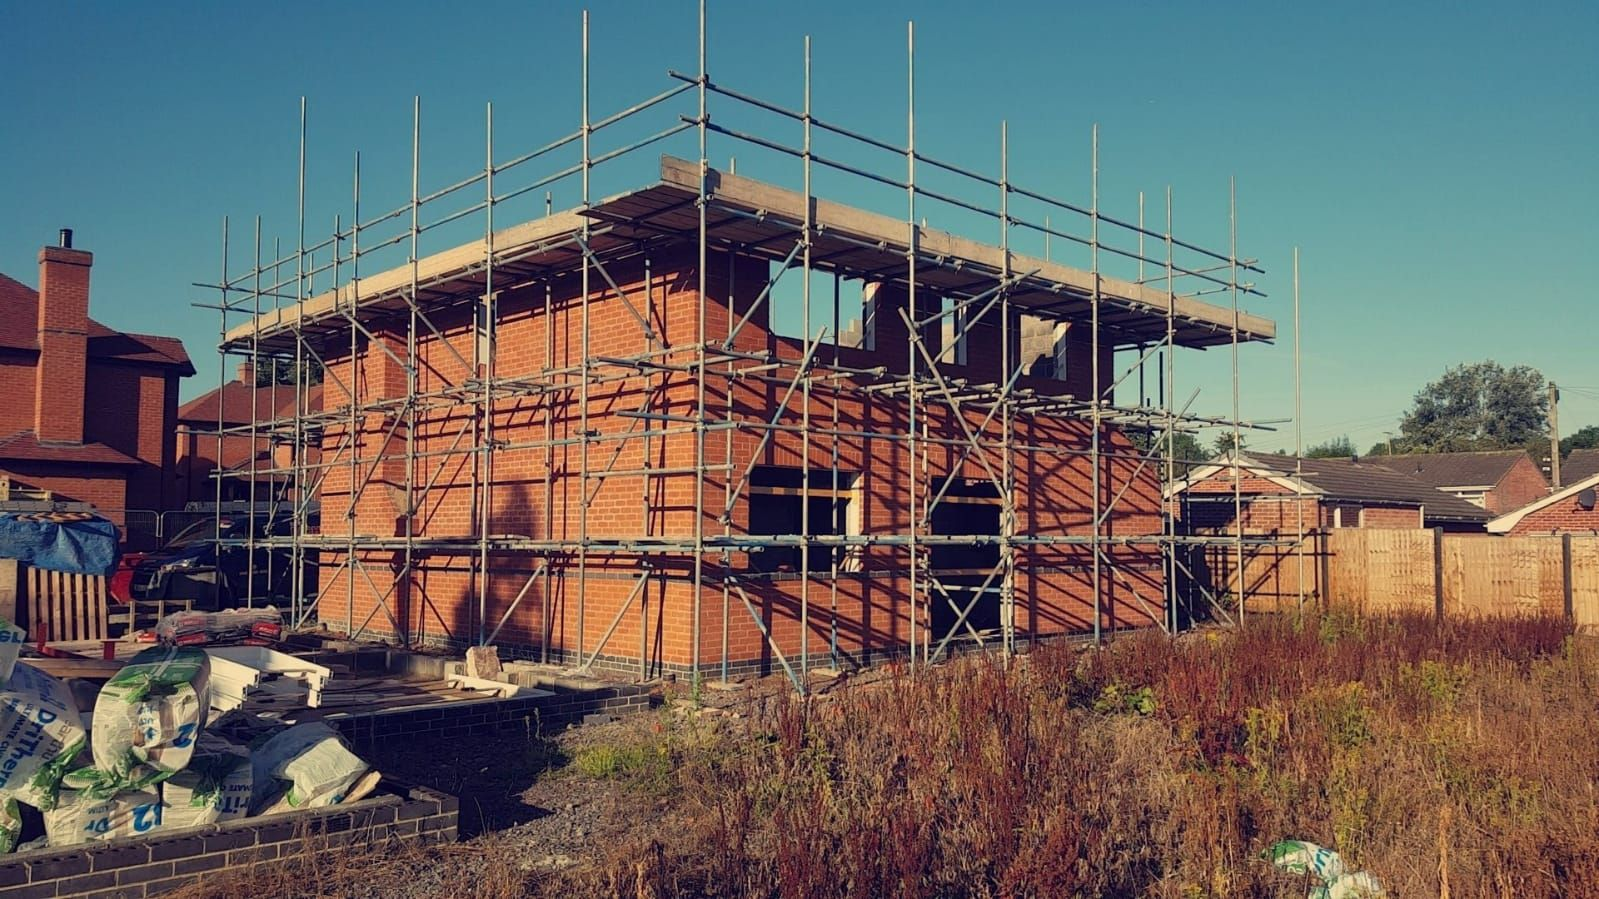 Ringrose new build under construction